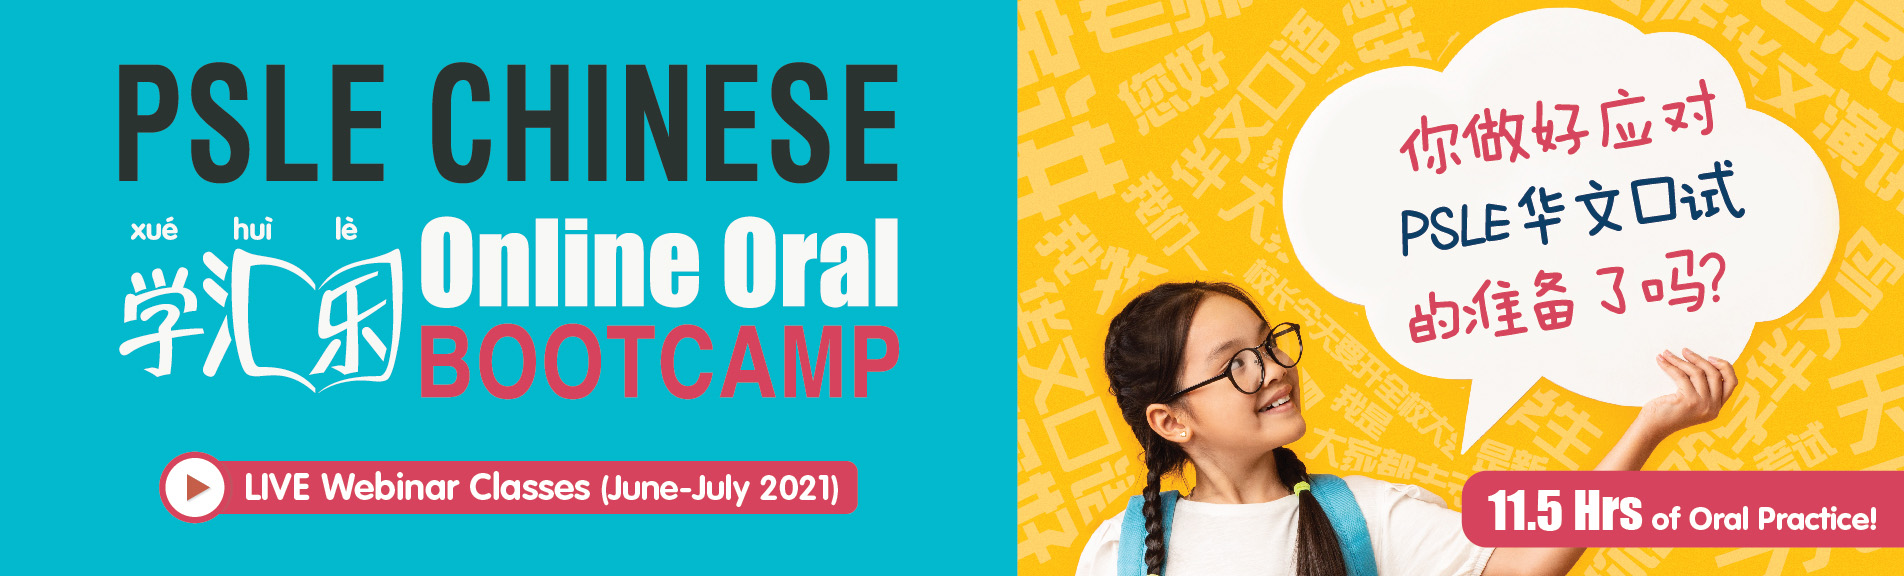 Xue Hui Le PSLE Chinese Oral bootcamp (Mind Stretcher)